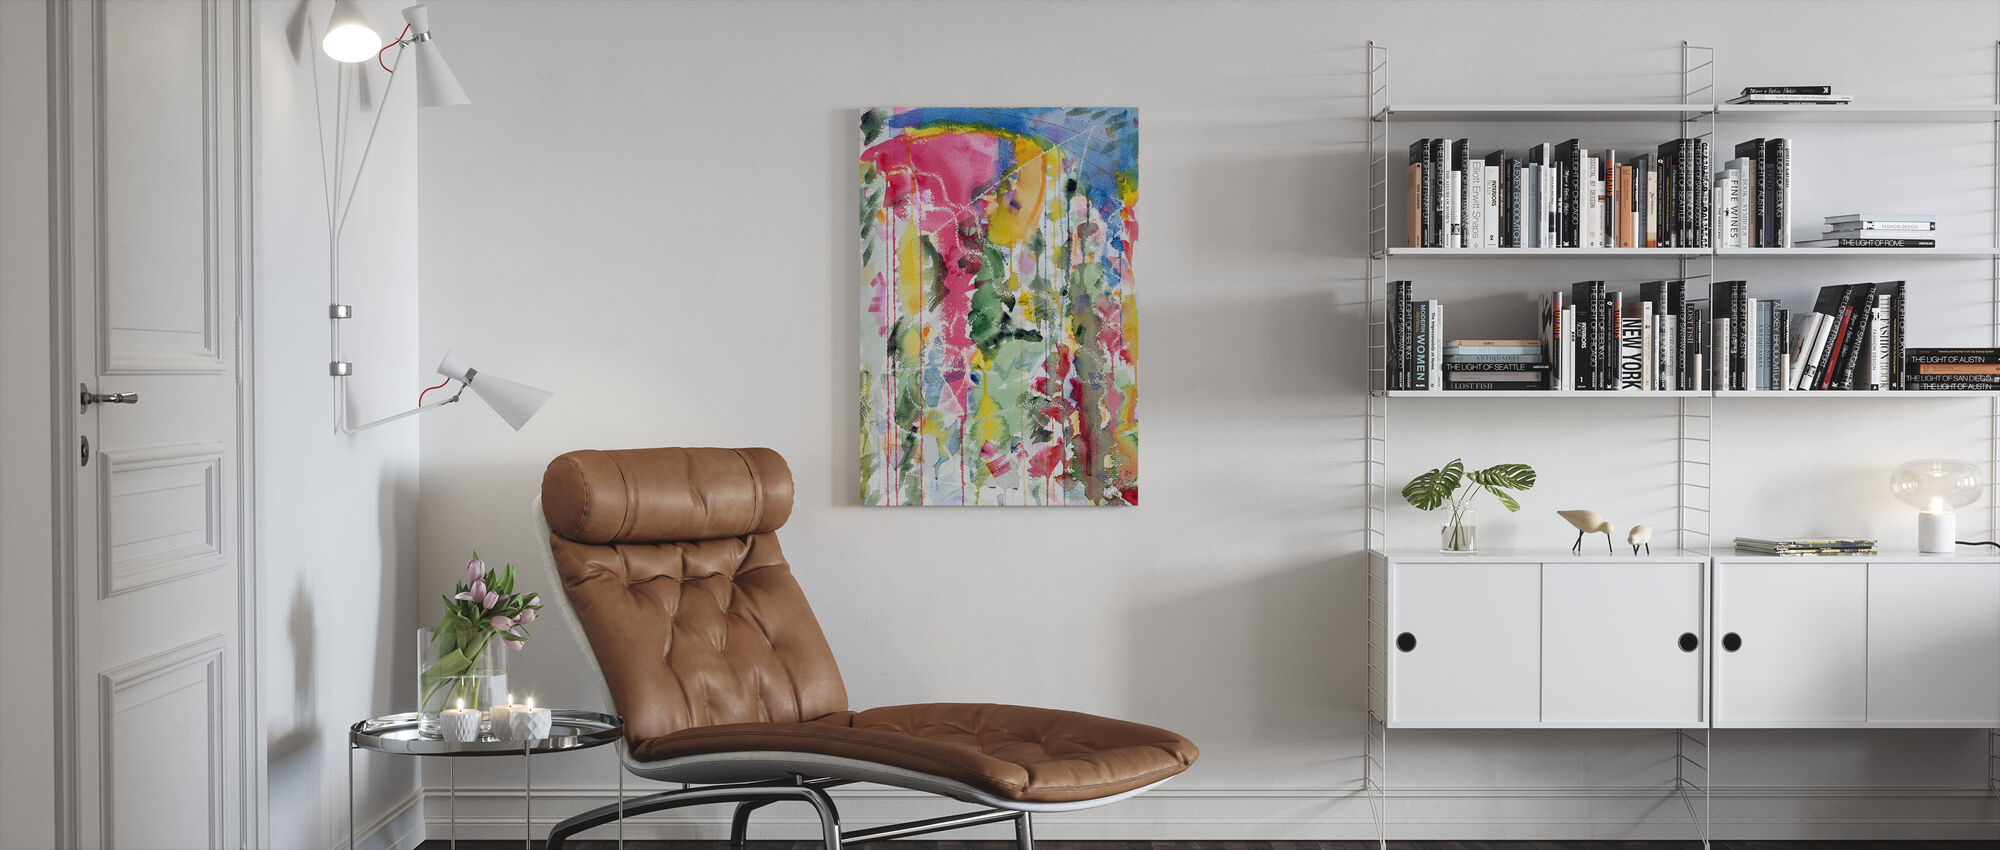 Blue Monday Dreaming - Mark Ari - Canvas print - Living Room